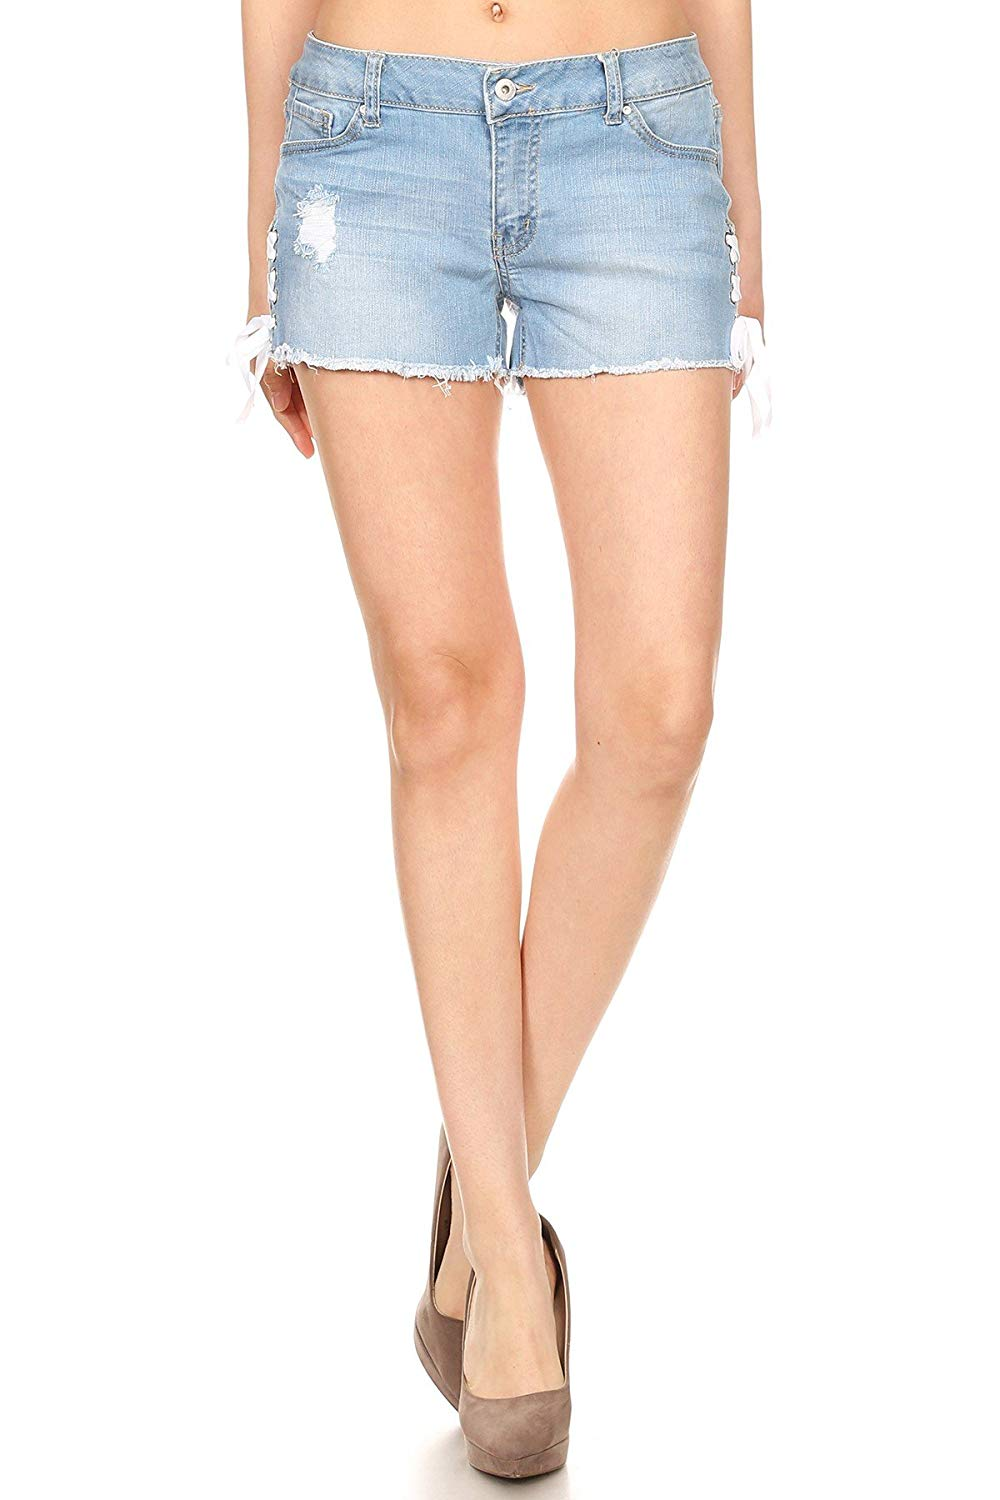 Ambiance Apparel Women's Sexy Stretchy Denim Lace up Ripped Shorts Jeans